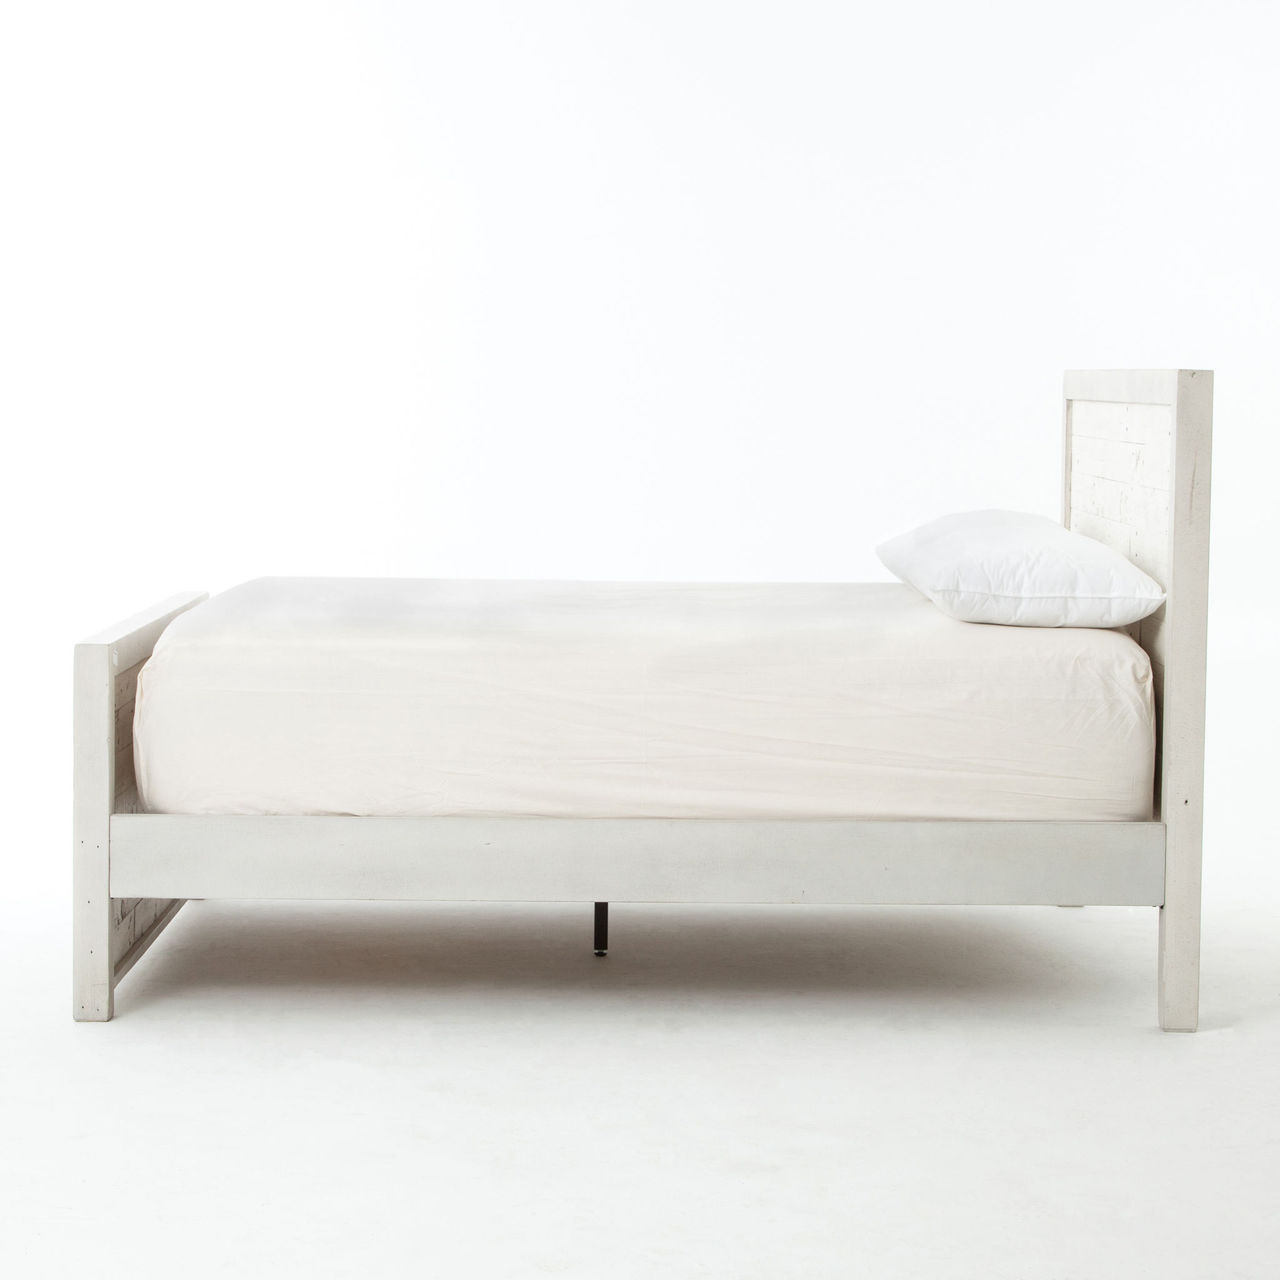 ... Caminito Rustic White Reclaimed Wood King Platform Bed ... - Caminito White Reclaimed Wood King Platform Bed Zin Home